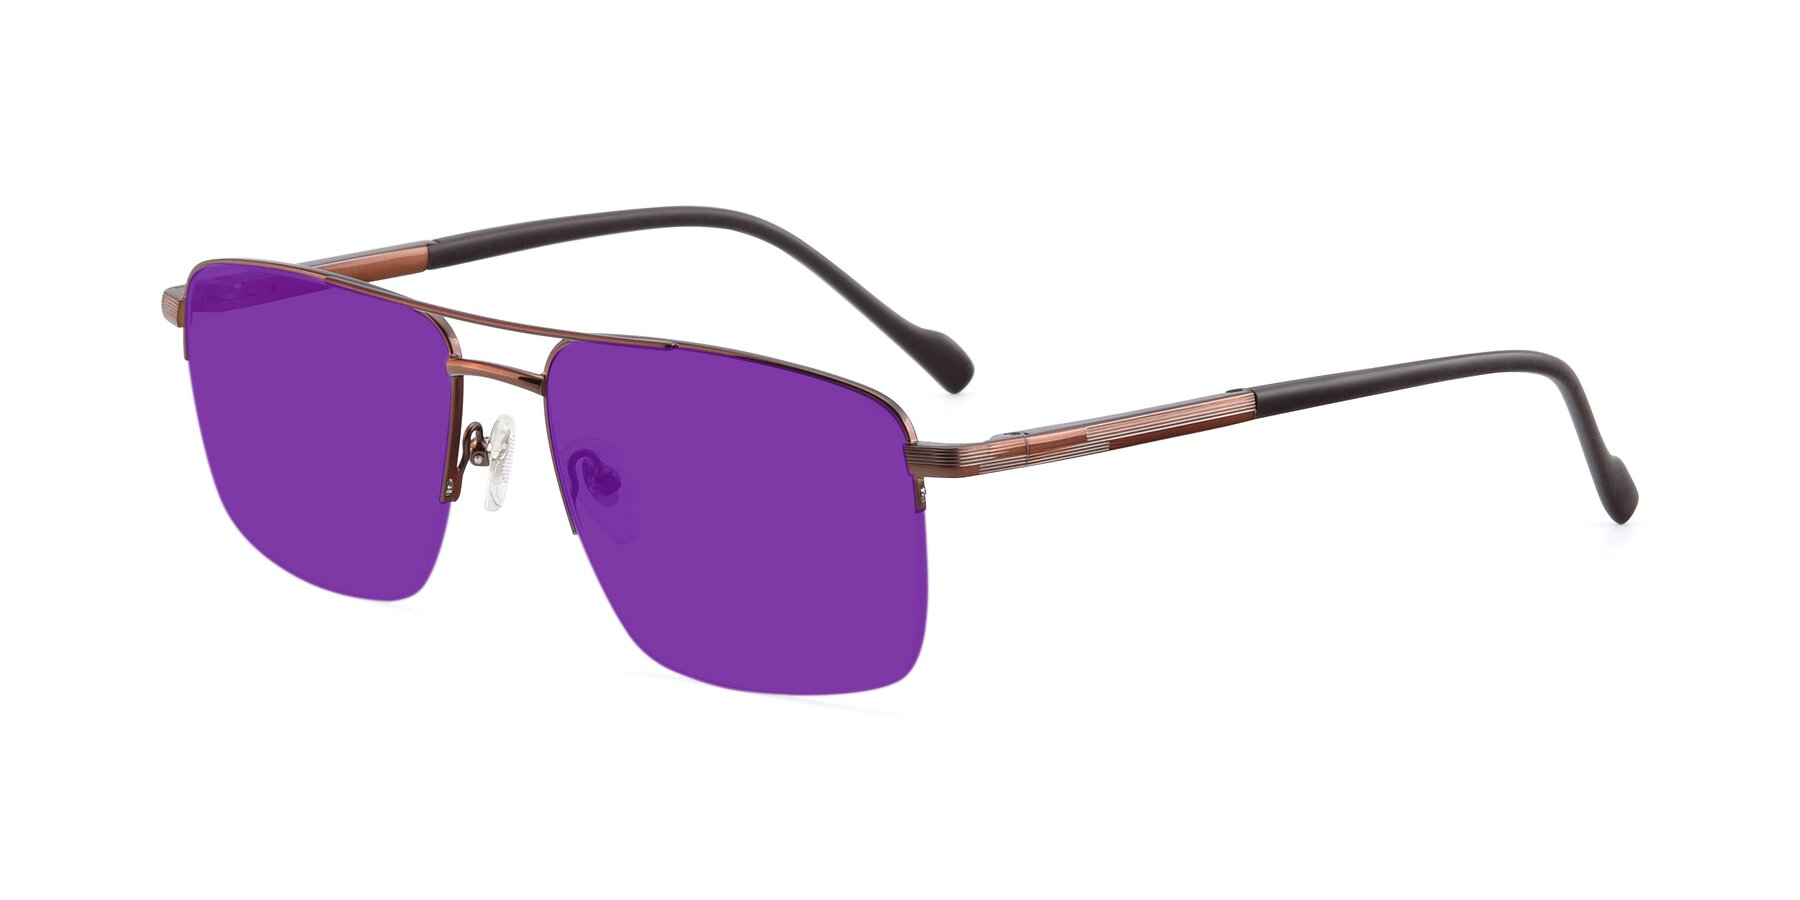 Angle of 19013 in Bronze with Purple Tinted Lenses